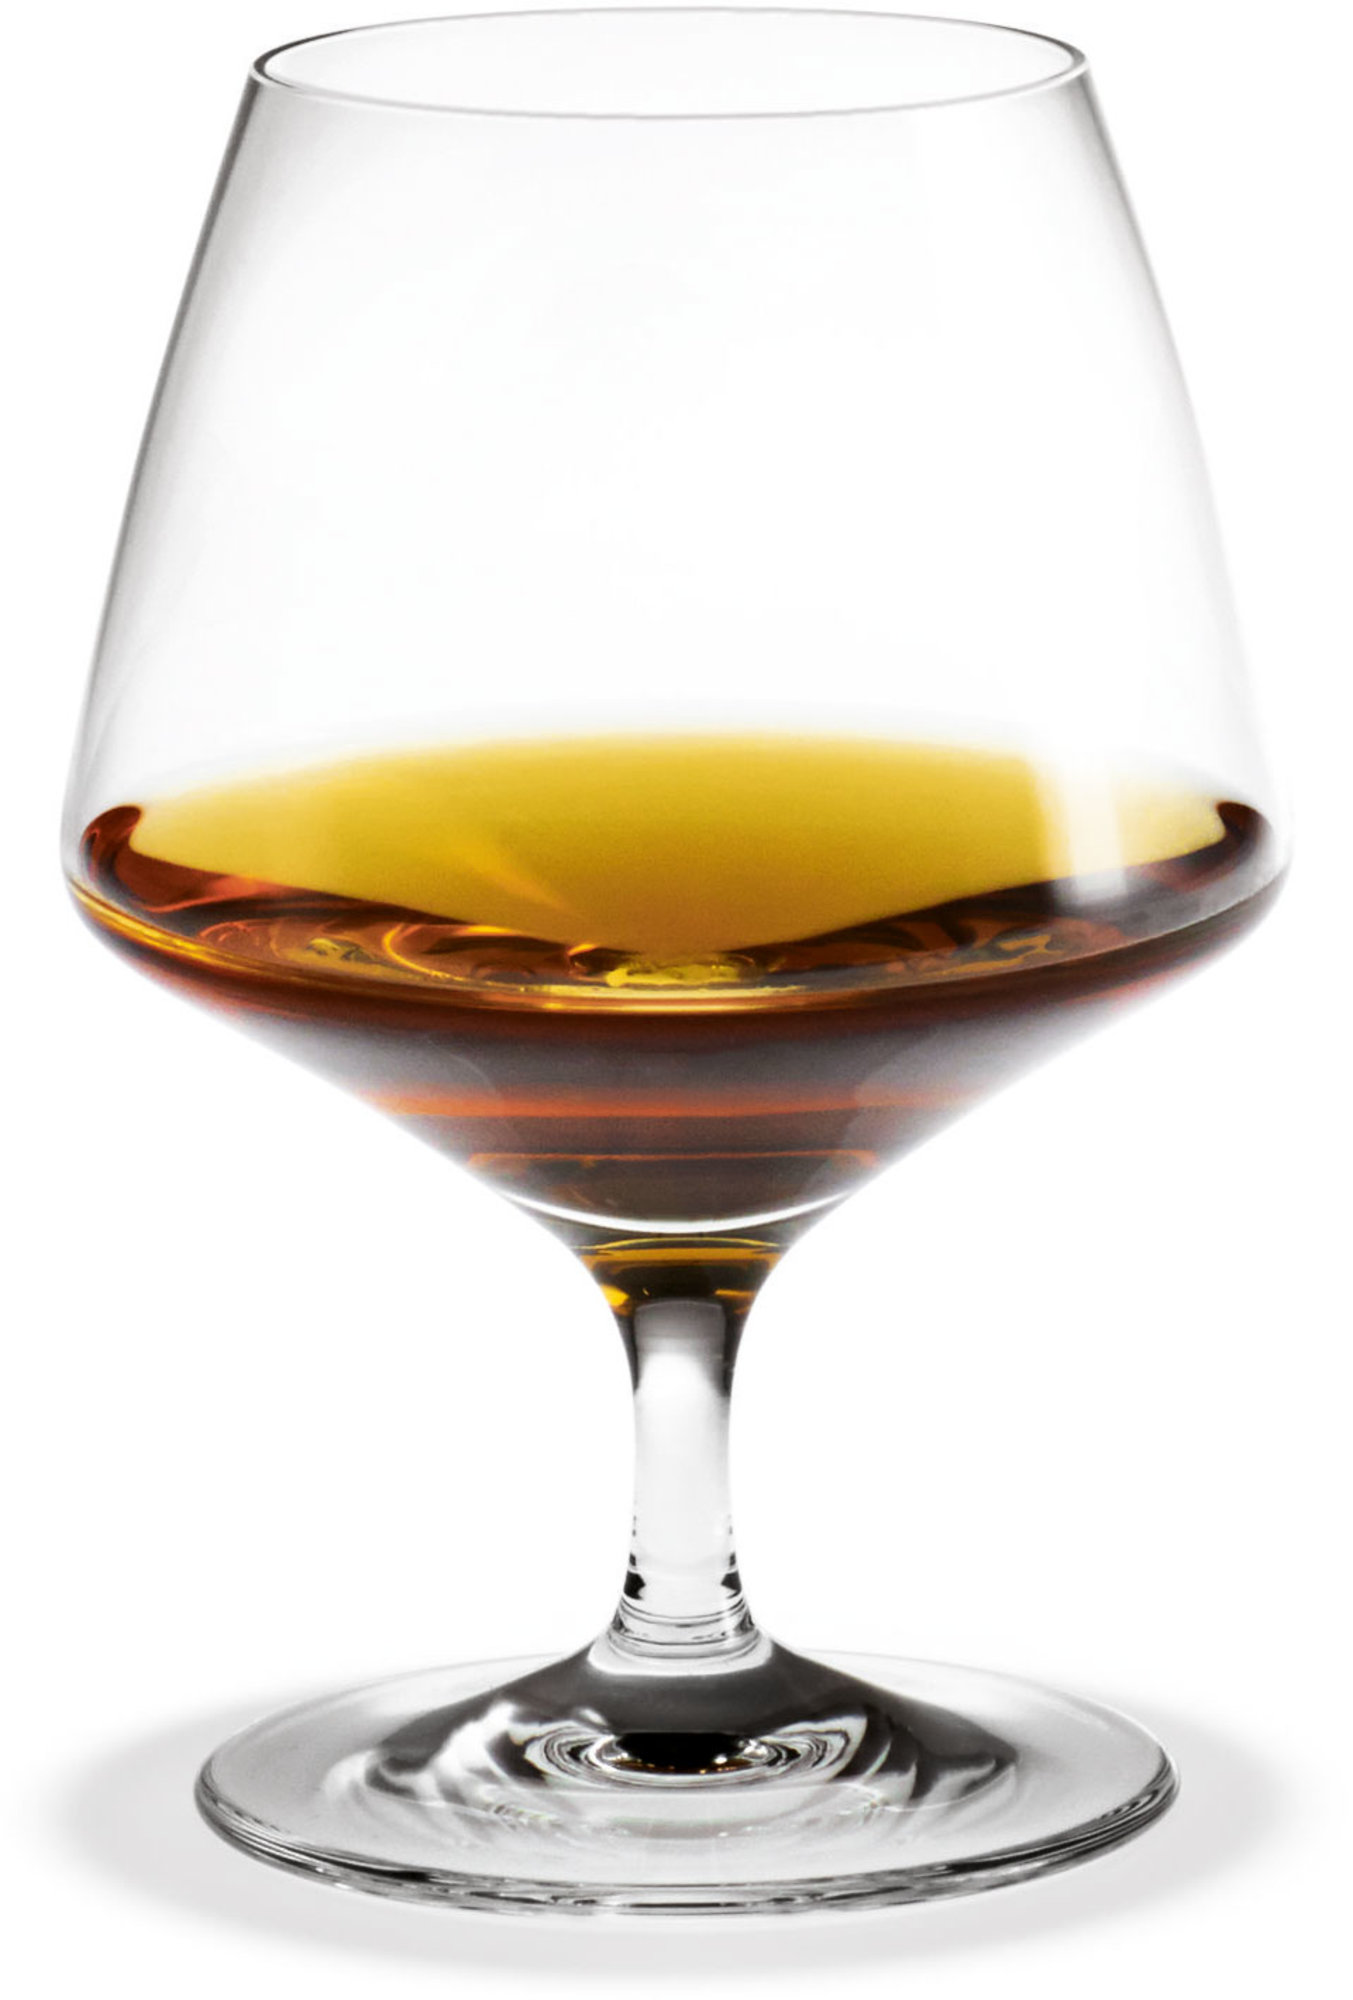 Holmegaard Perfection Cognac, 1 stk., 36 cl